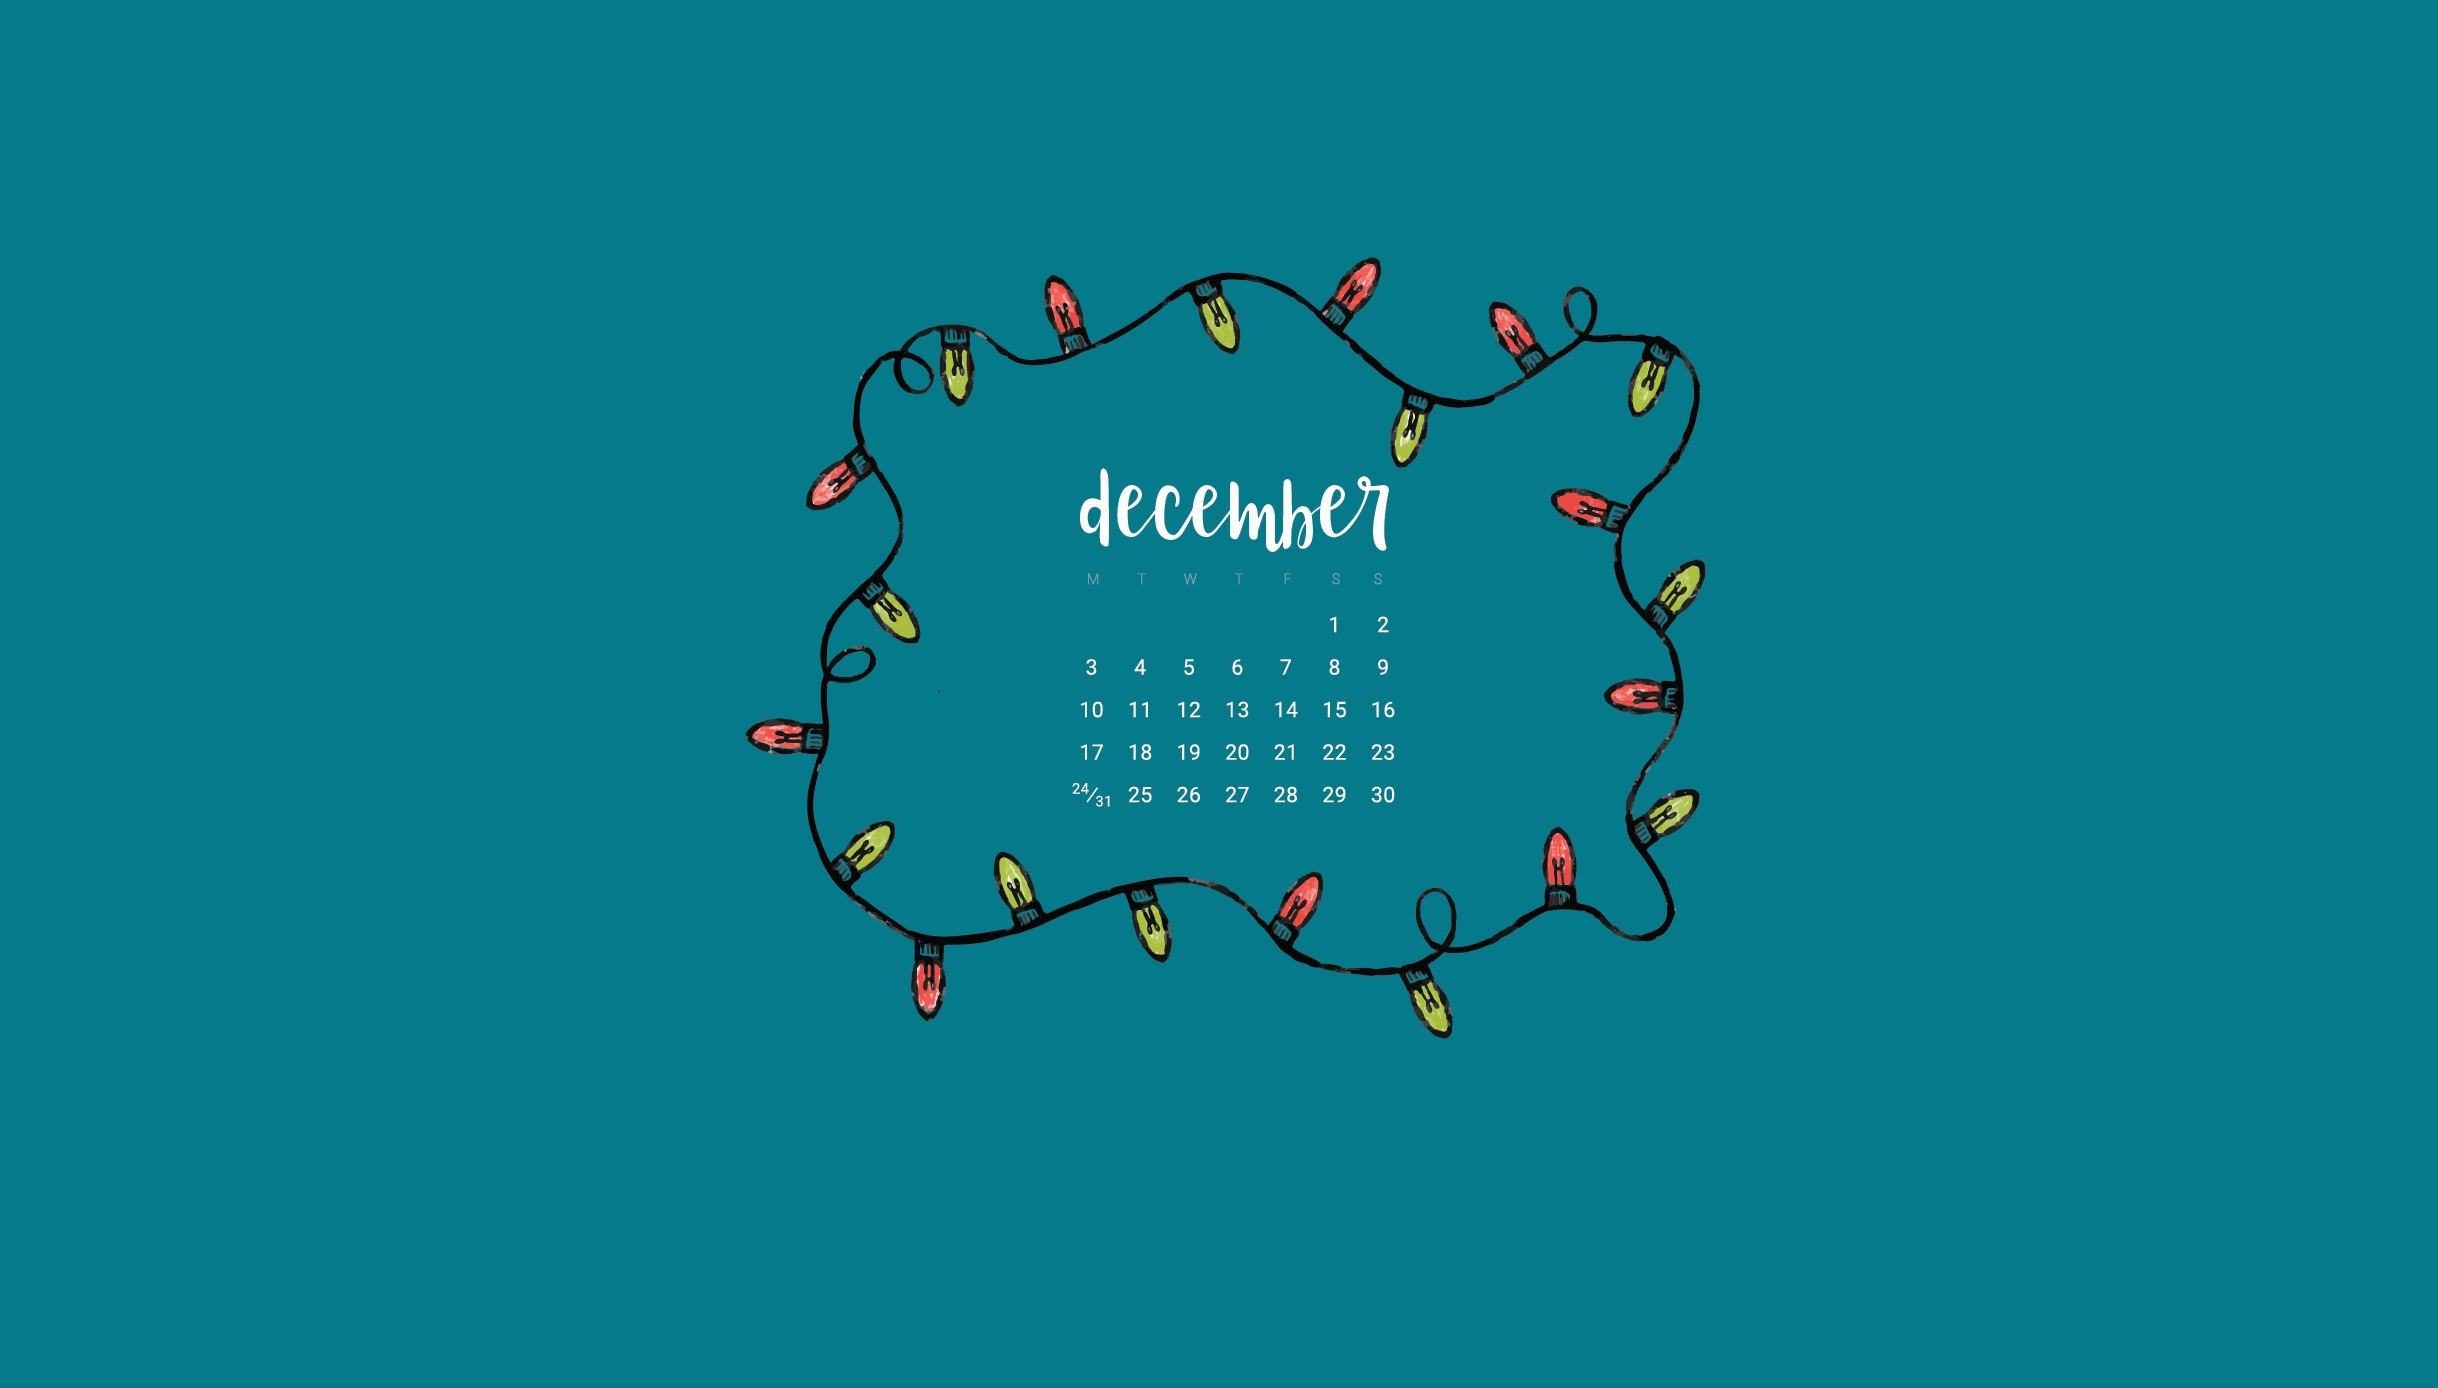 december 2018 calendar wallpaper::December 2018 Calendar Cute